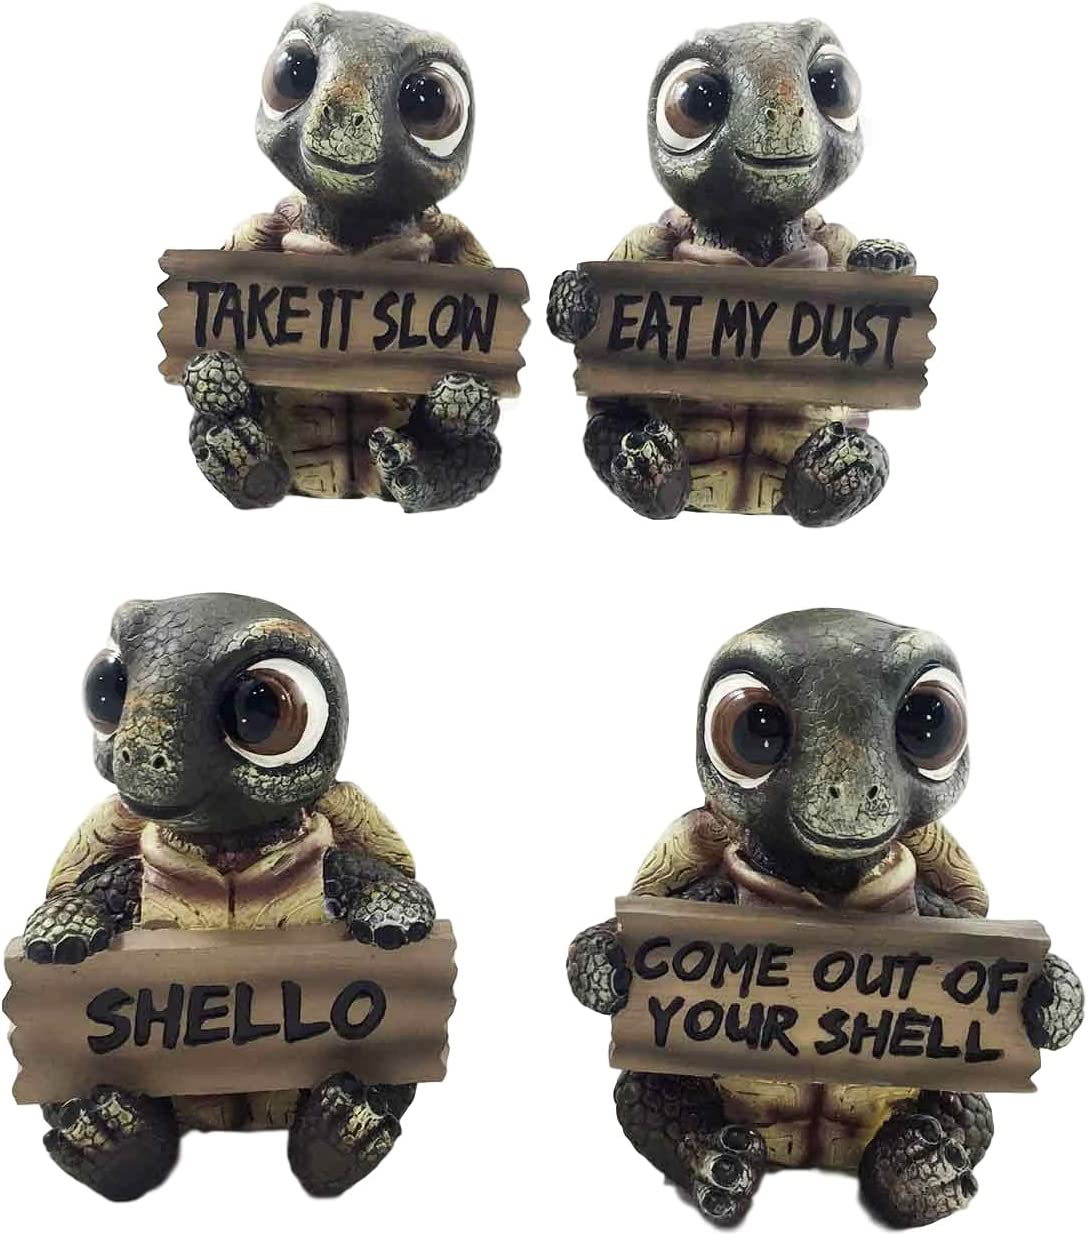 Ebros Whimsical Cute Sea Turtles Set of Four Statue Set Holding Signs With Funny Sayings Baby Tortoises Figurines